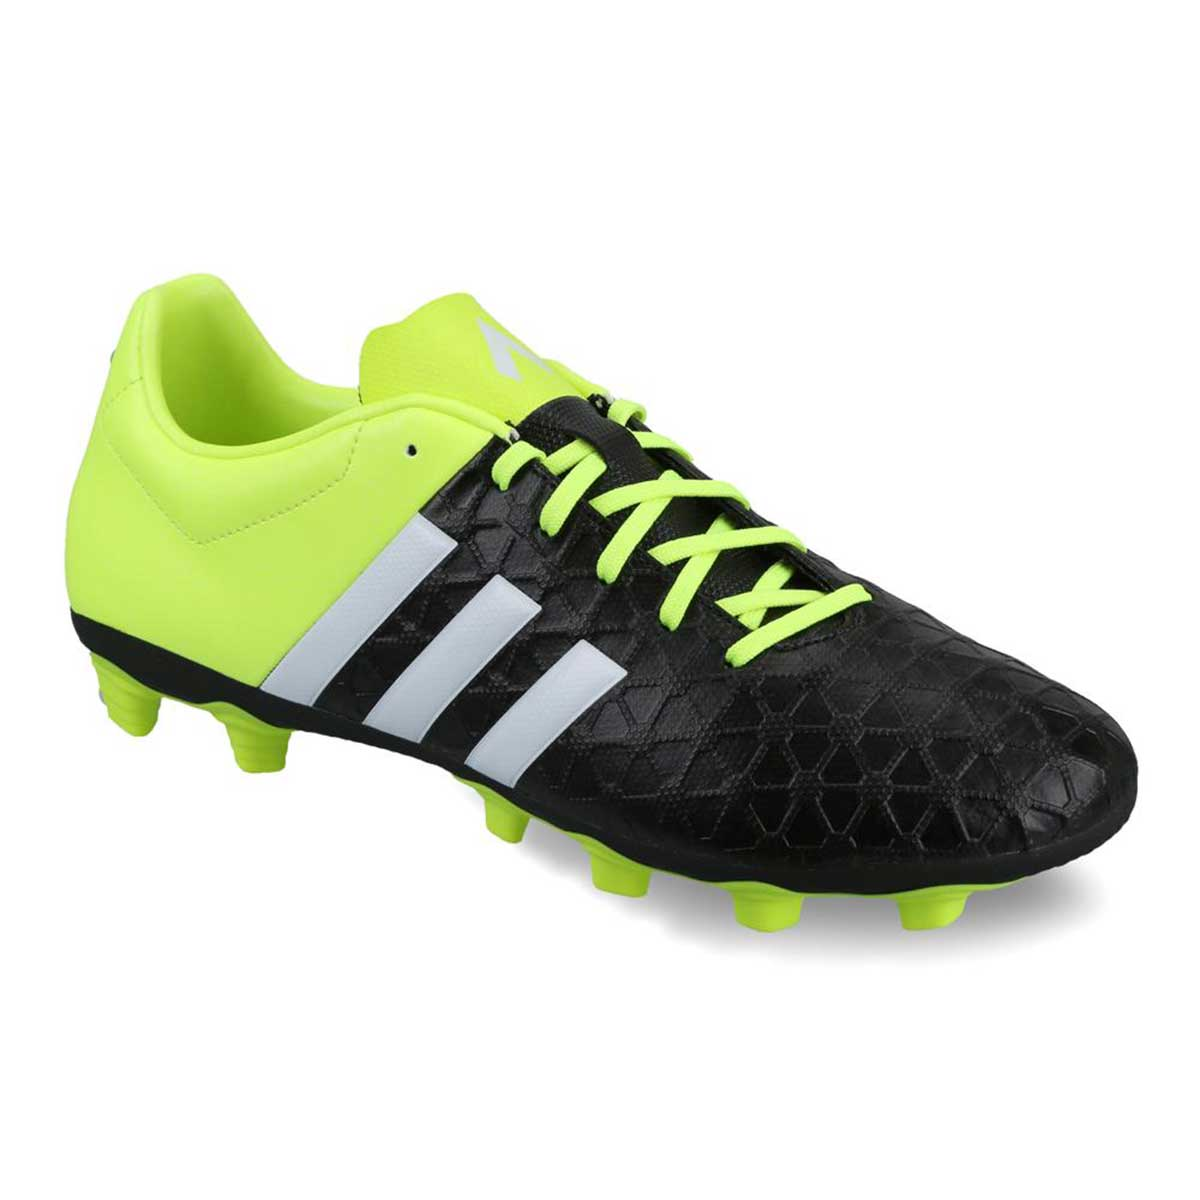 new arrival 4369d 3cf95 Adidas ACE 15.4 FXG Football Shoes